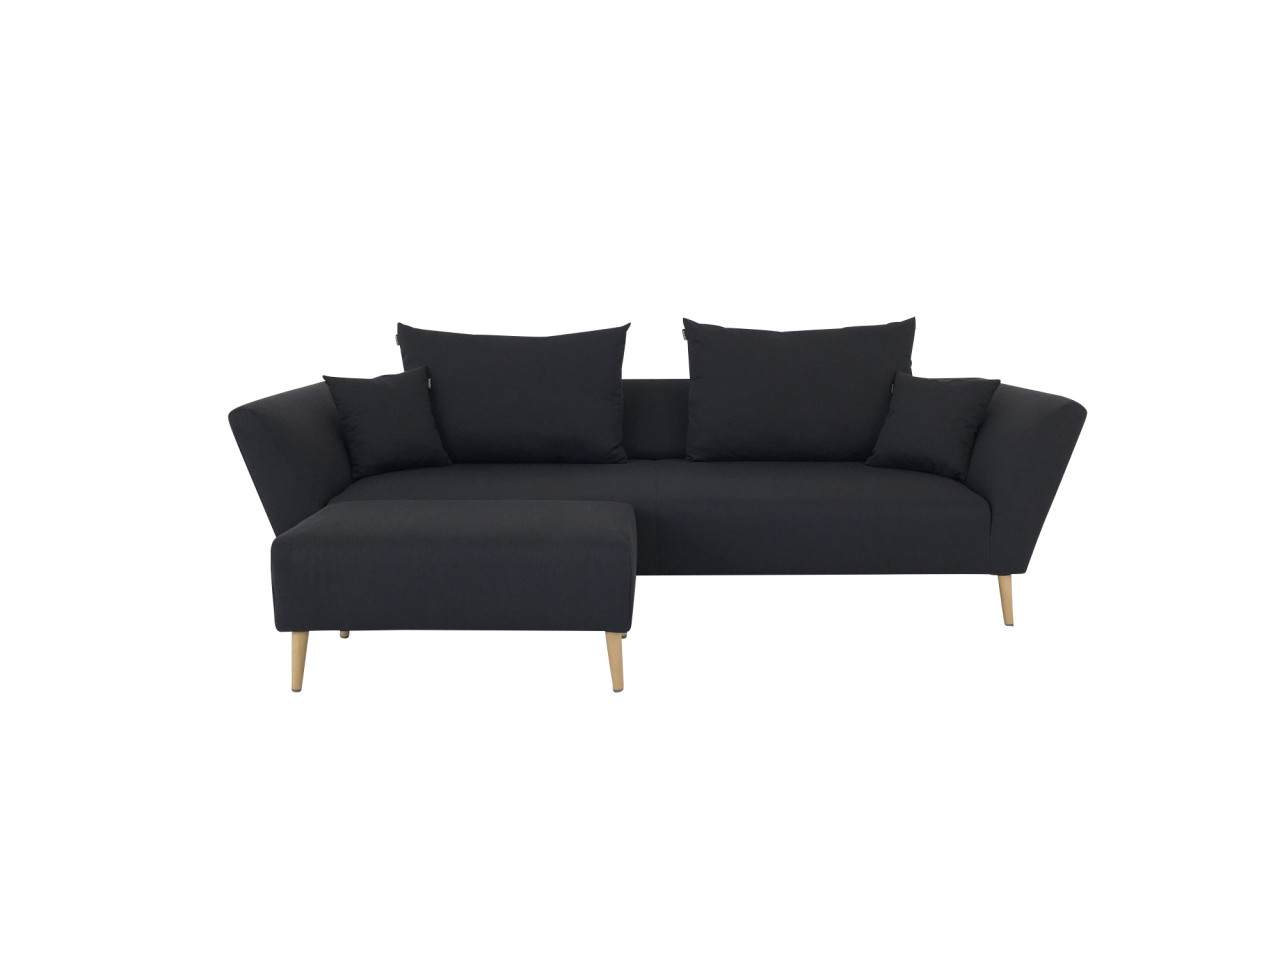 freistil 176 sofa mit polsterbank und kissen in stoff. Black Bedroom Furniture Sets. Home Design Ideas